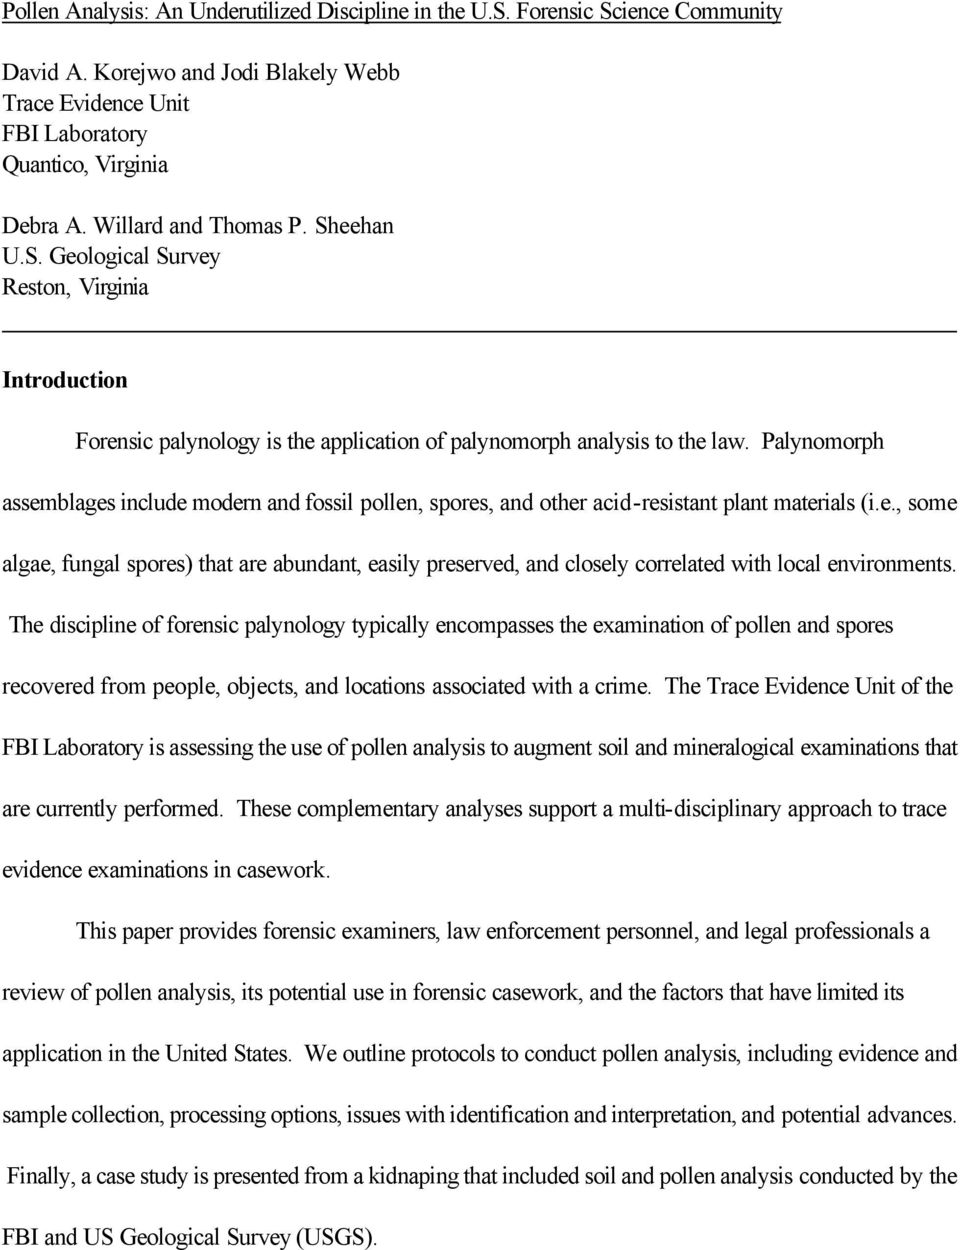 Pollen Analysis An Underutilized Discipline In The U S Forensic Science Community Pdf Free Download